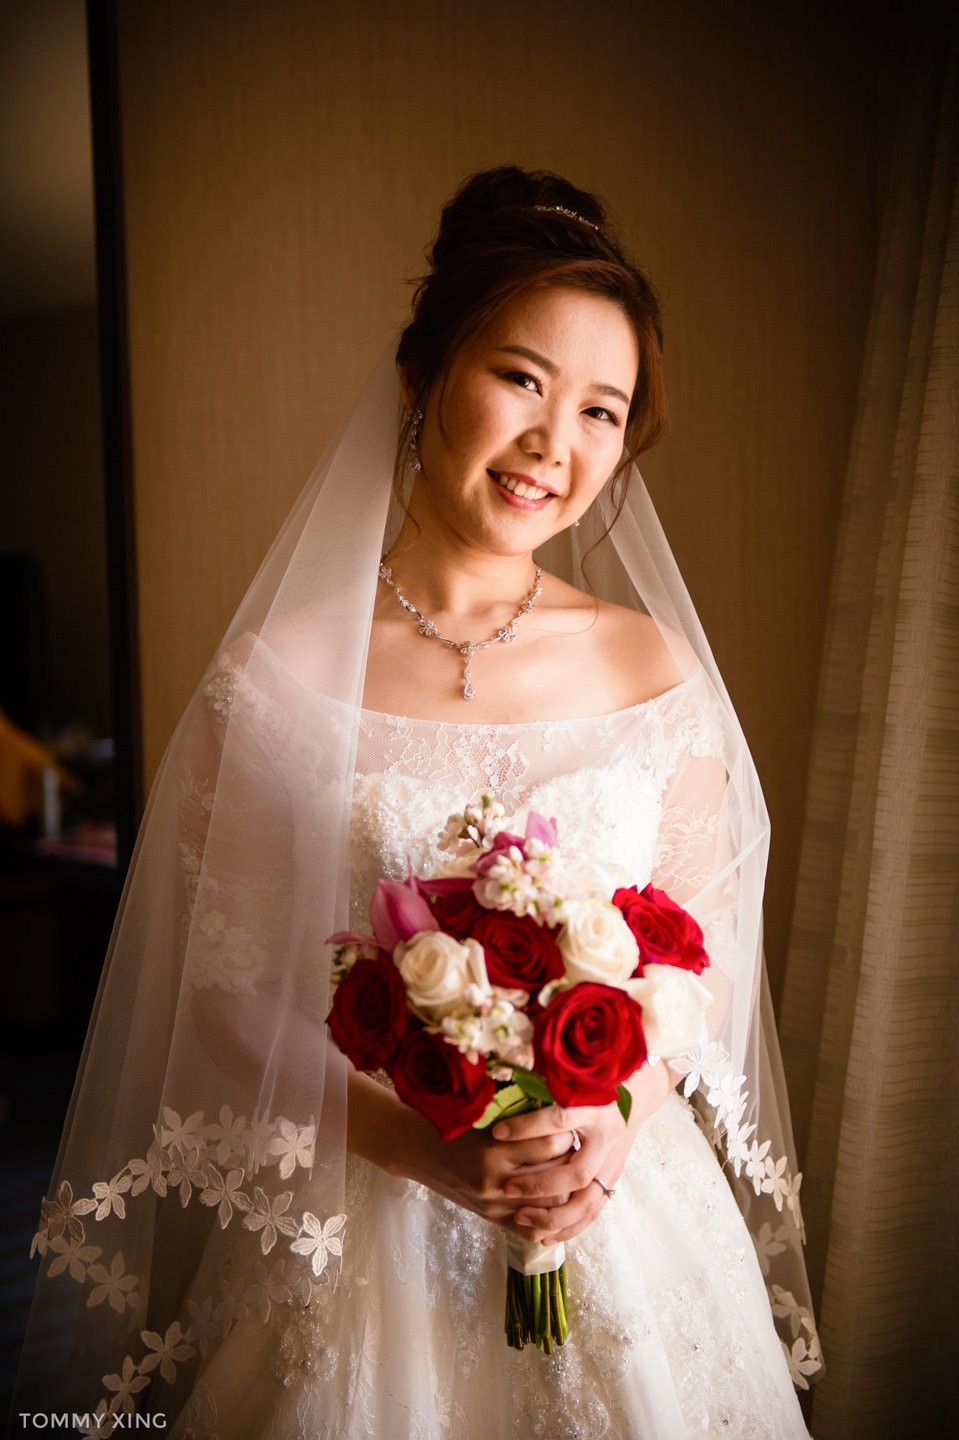 Los Angeles Wedding Photographer 洛杉矶婚礼婚纱摄影师 Tommy Xing-76.JPG